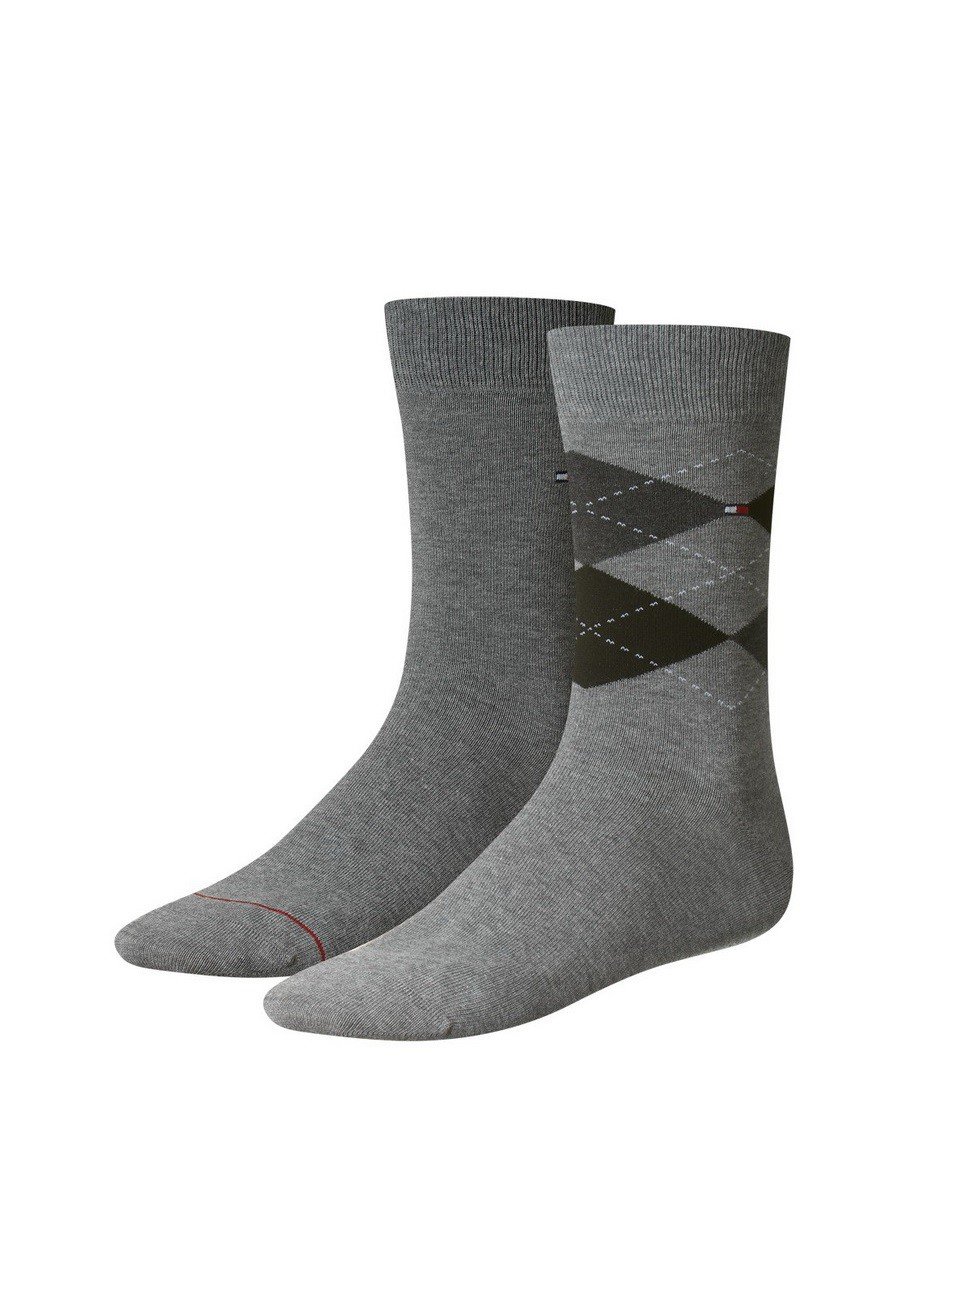 Tommy Hilfiger Herrensocken Check Socks - 2er Pack